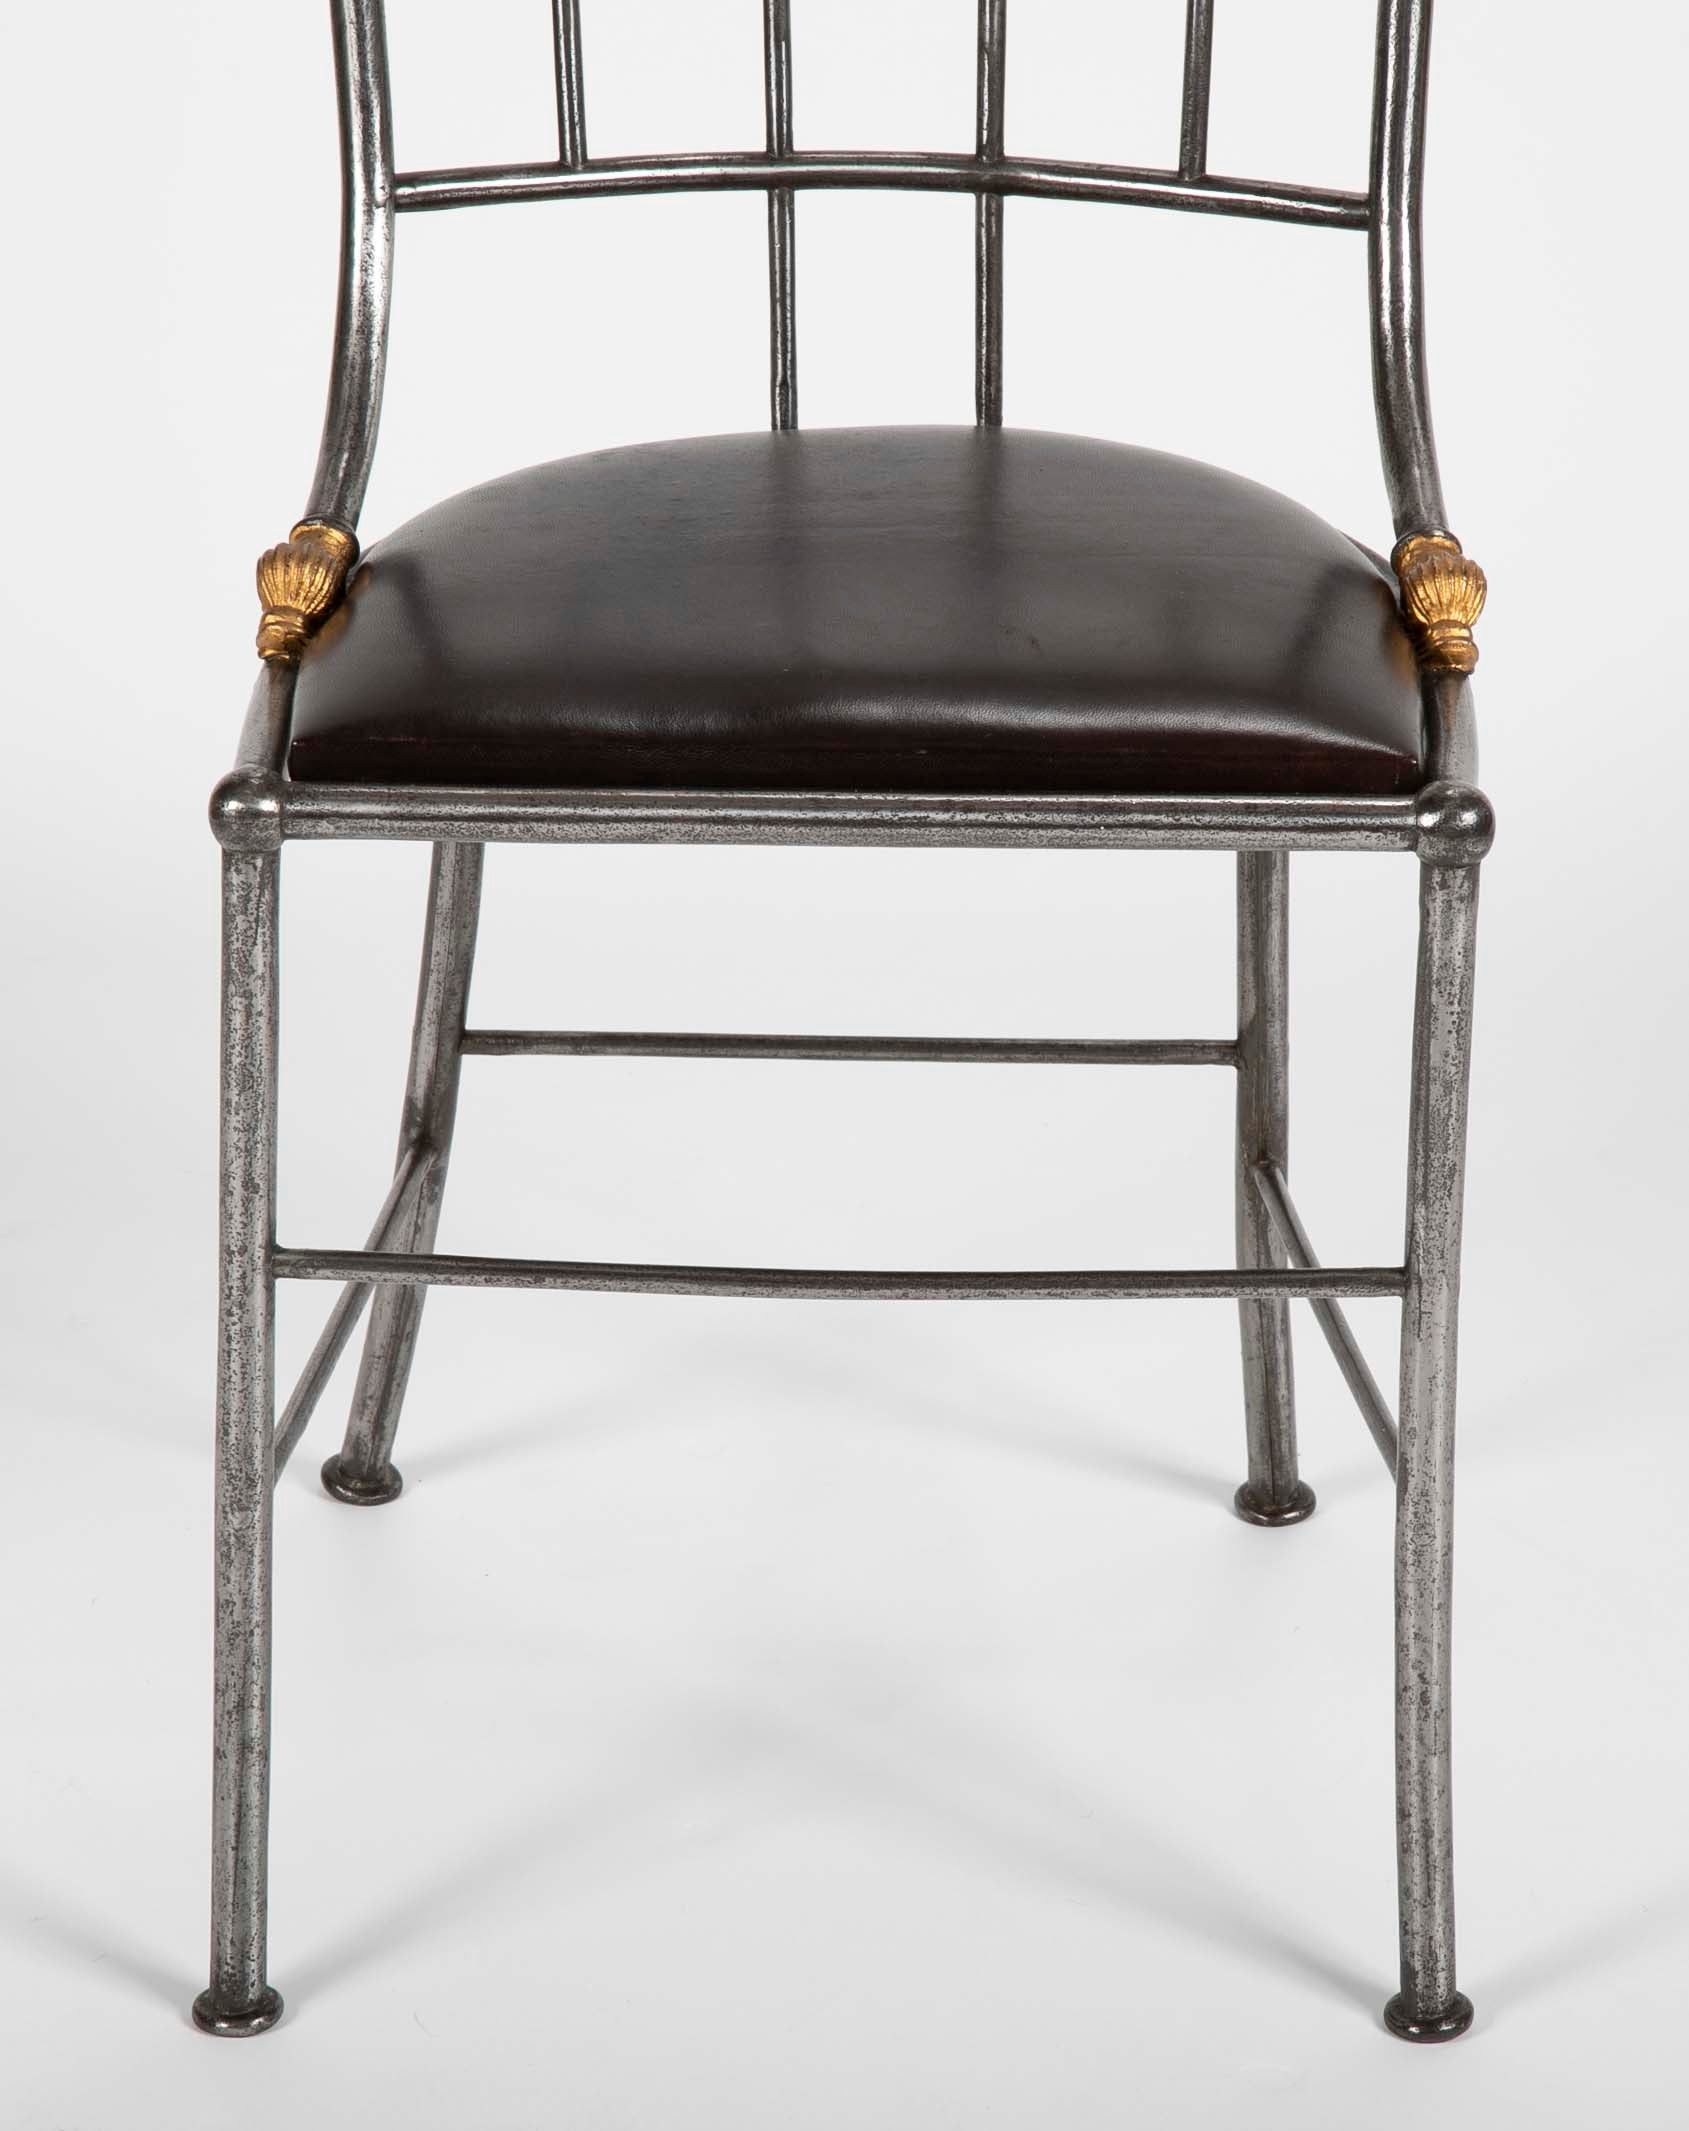 Set of Four Distinctive French Steel & Parcel Gilt Metal Side Chairs